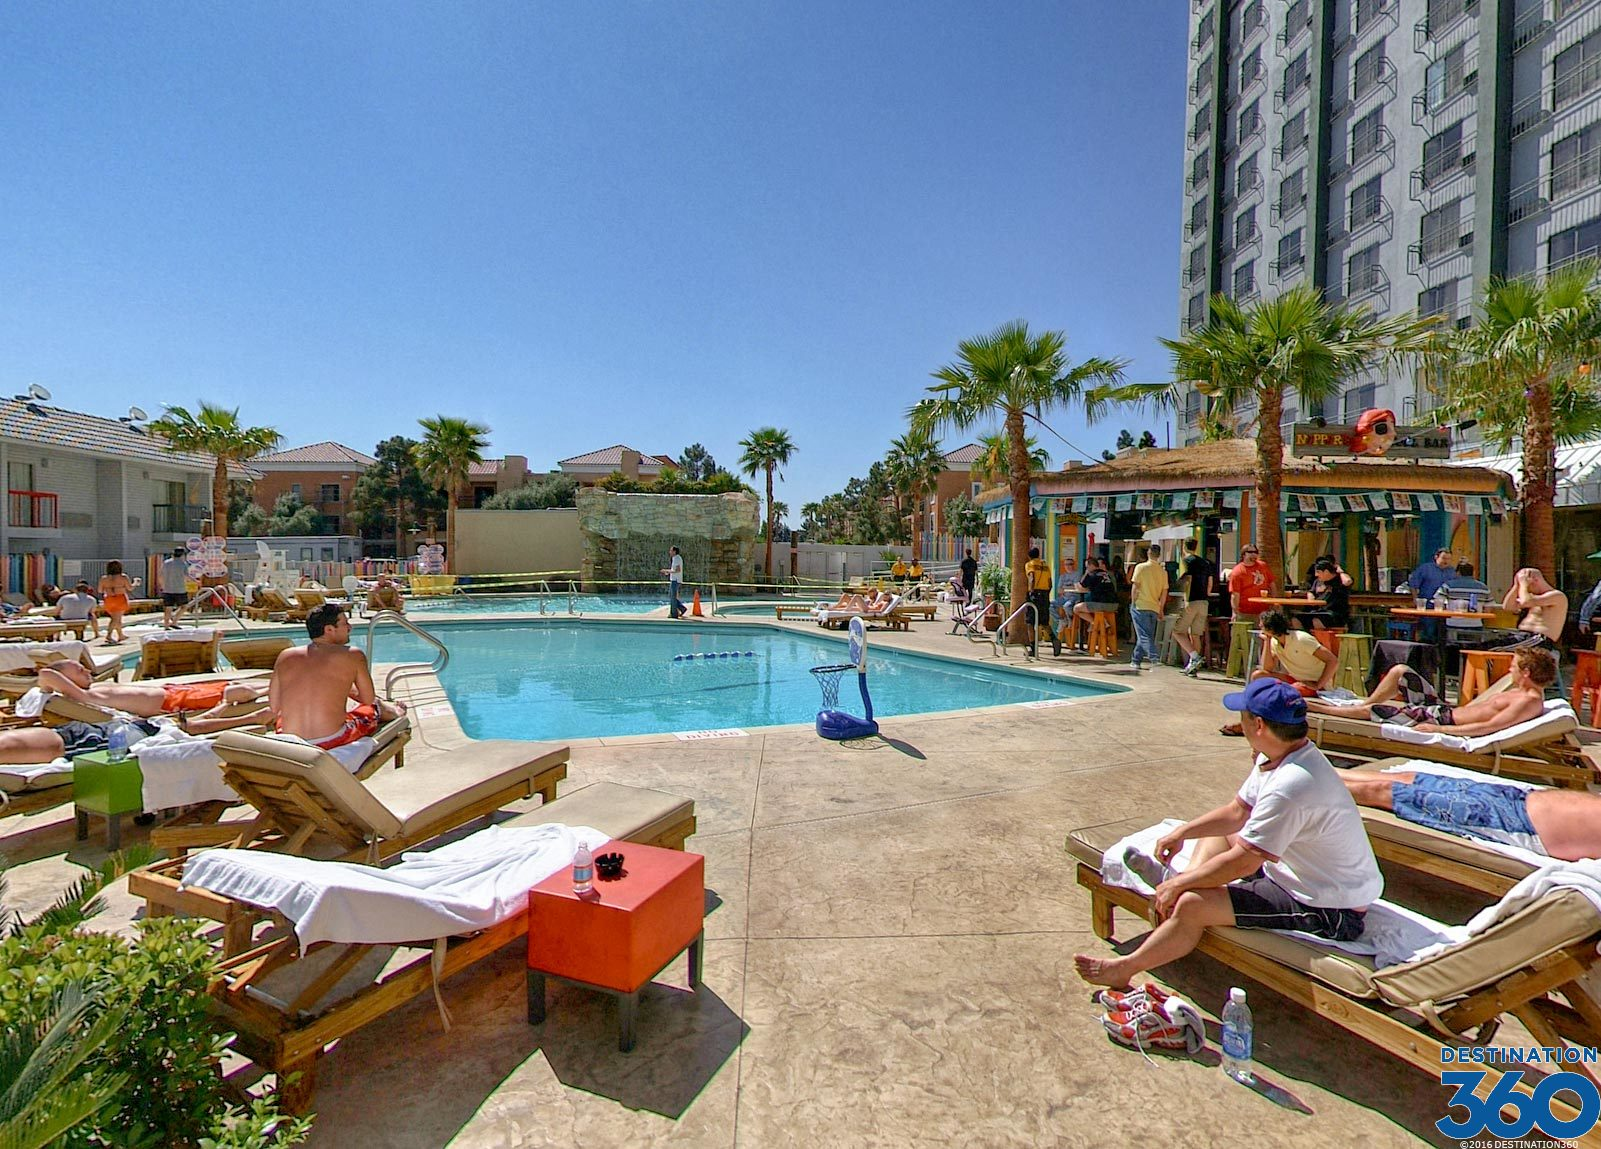 Hooters Hotel And Casino Pool Nippers Pool